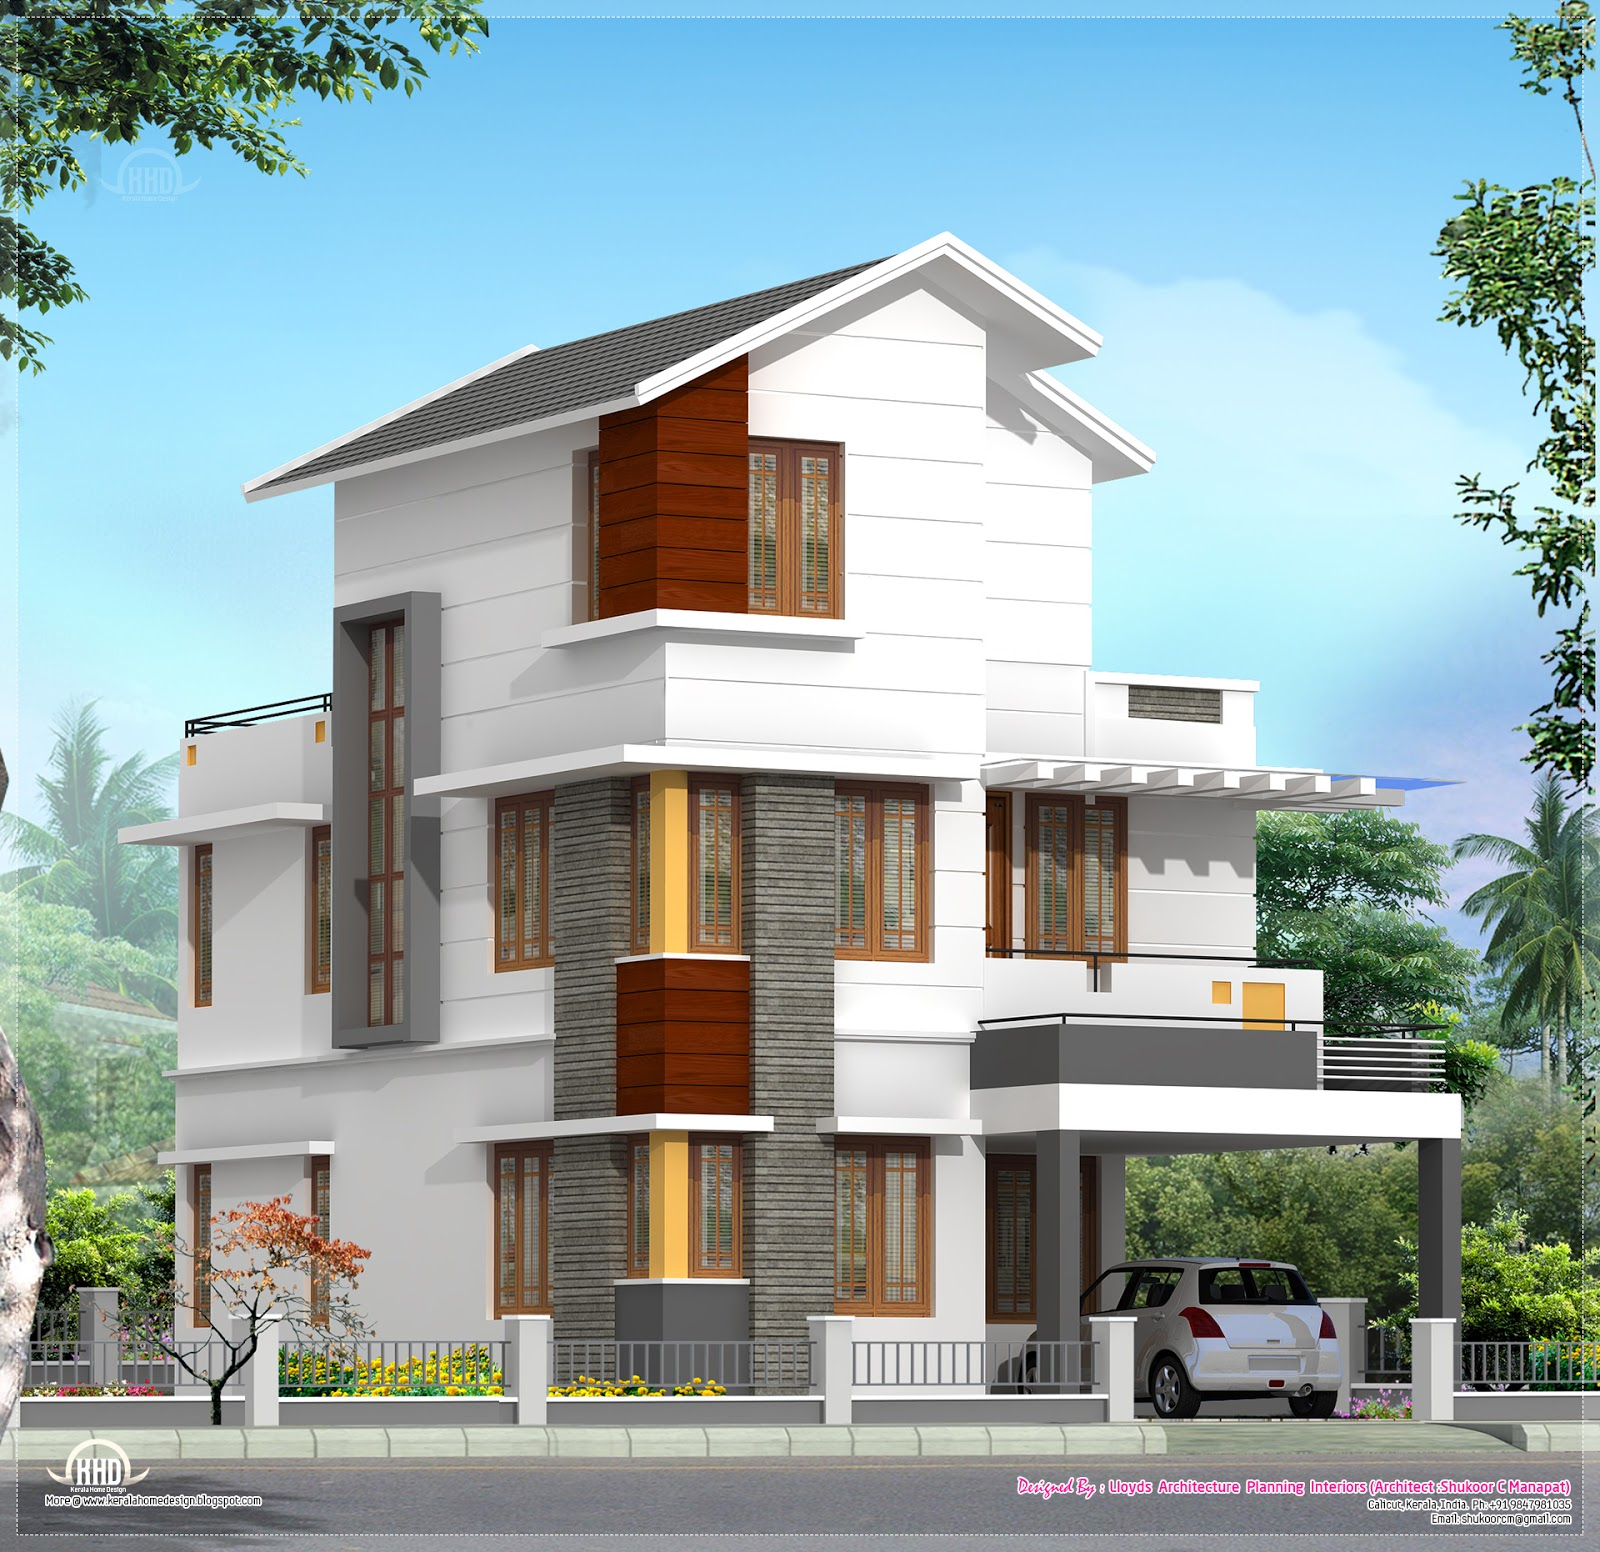 4 bedroom house plan in less that 3 cents home kerala plans for 2 bedroom homes to build